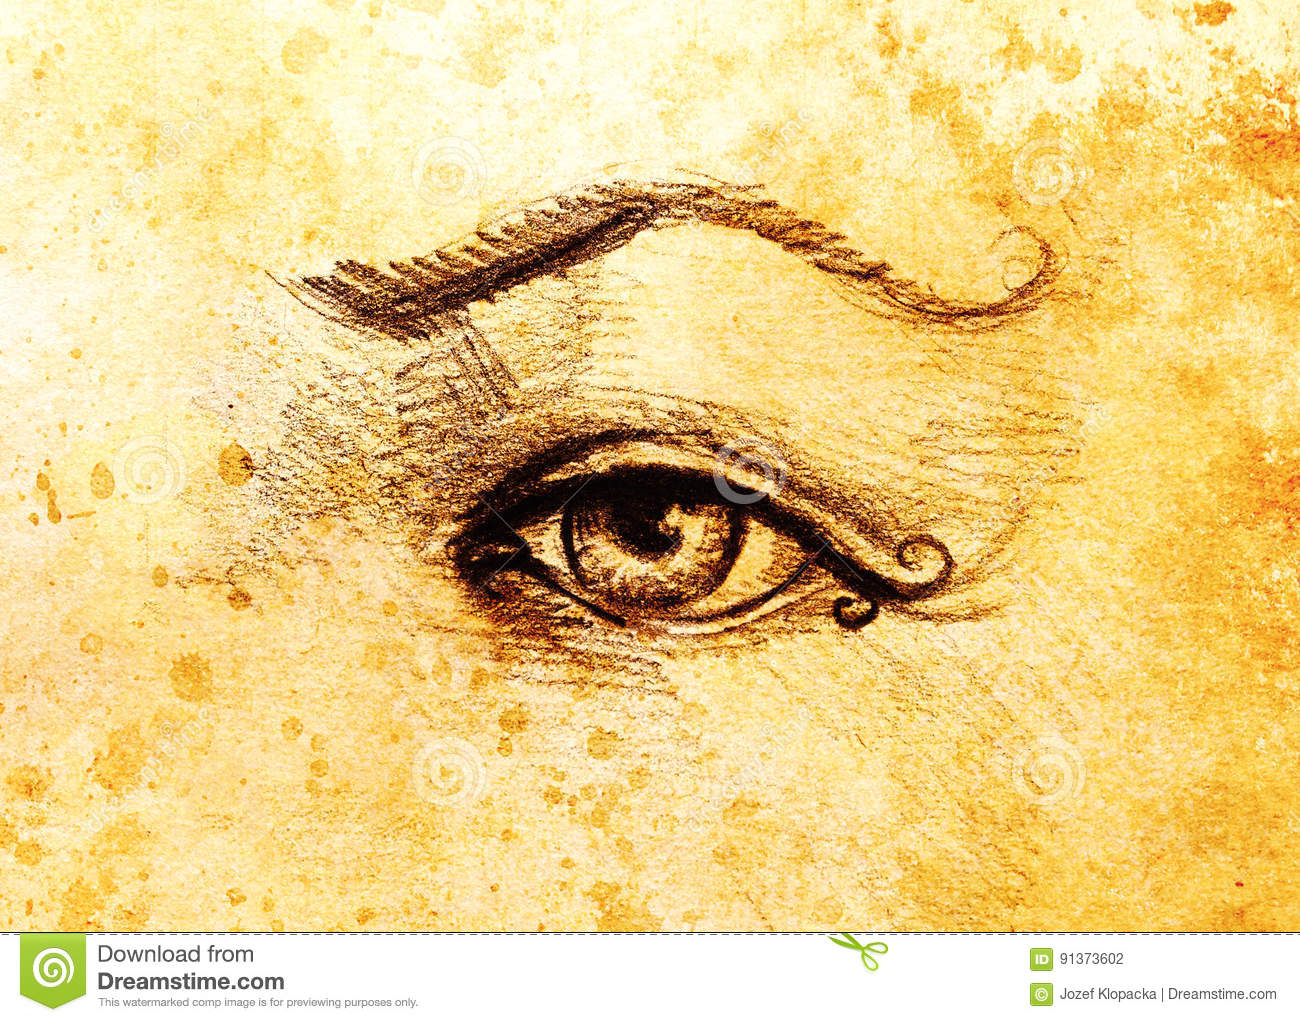 Sketch Of Woman Eye With Eyebrow Drawing On Abstract